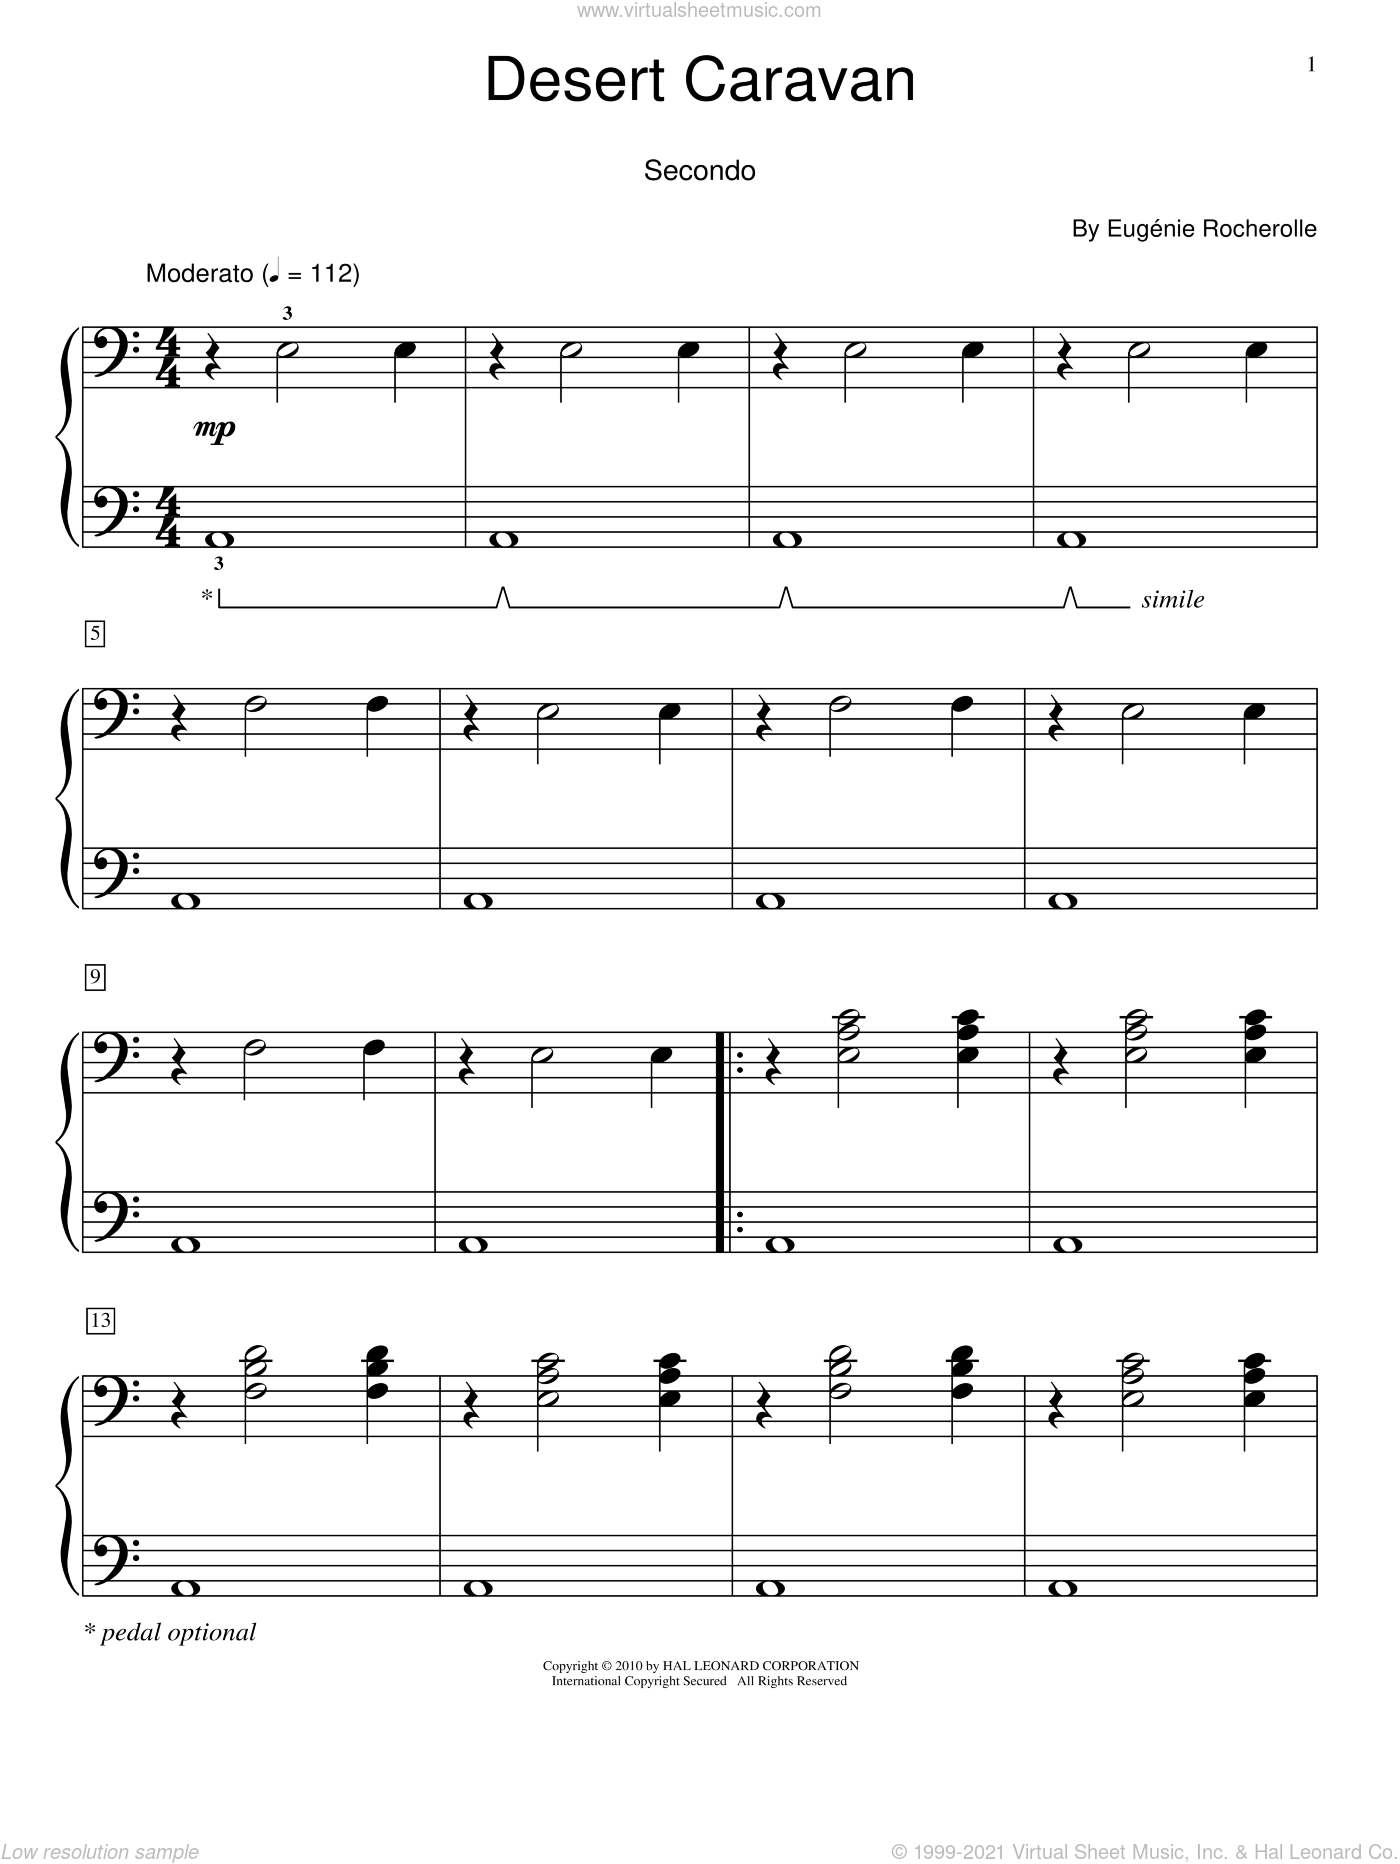 Desert Caravan sheet music for piano four hands by Eugenie Rocherolle and Miscellaneous, intermediate skill level